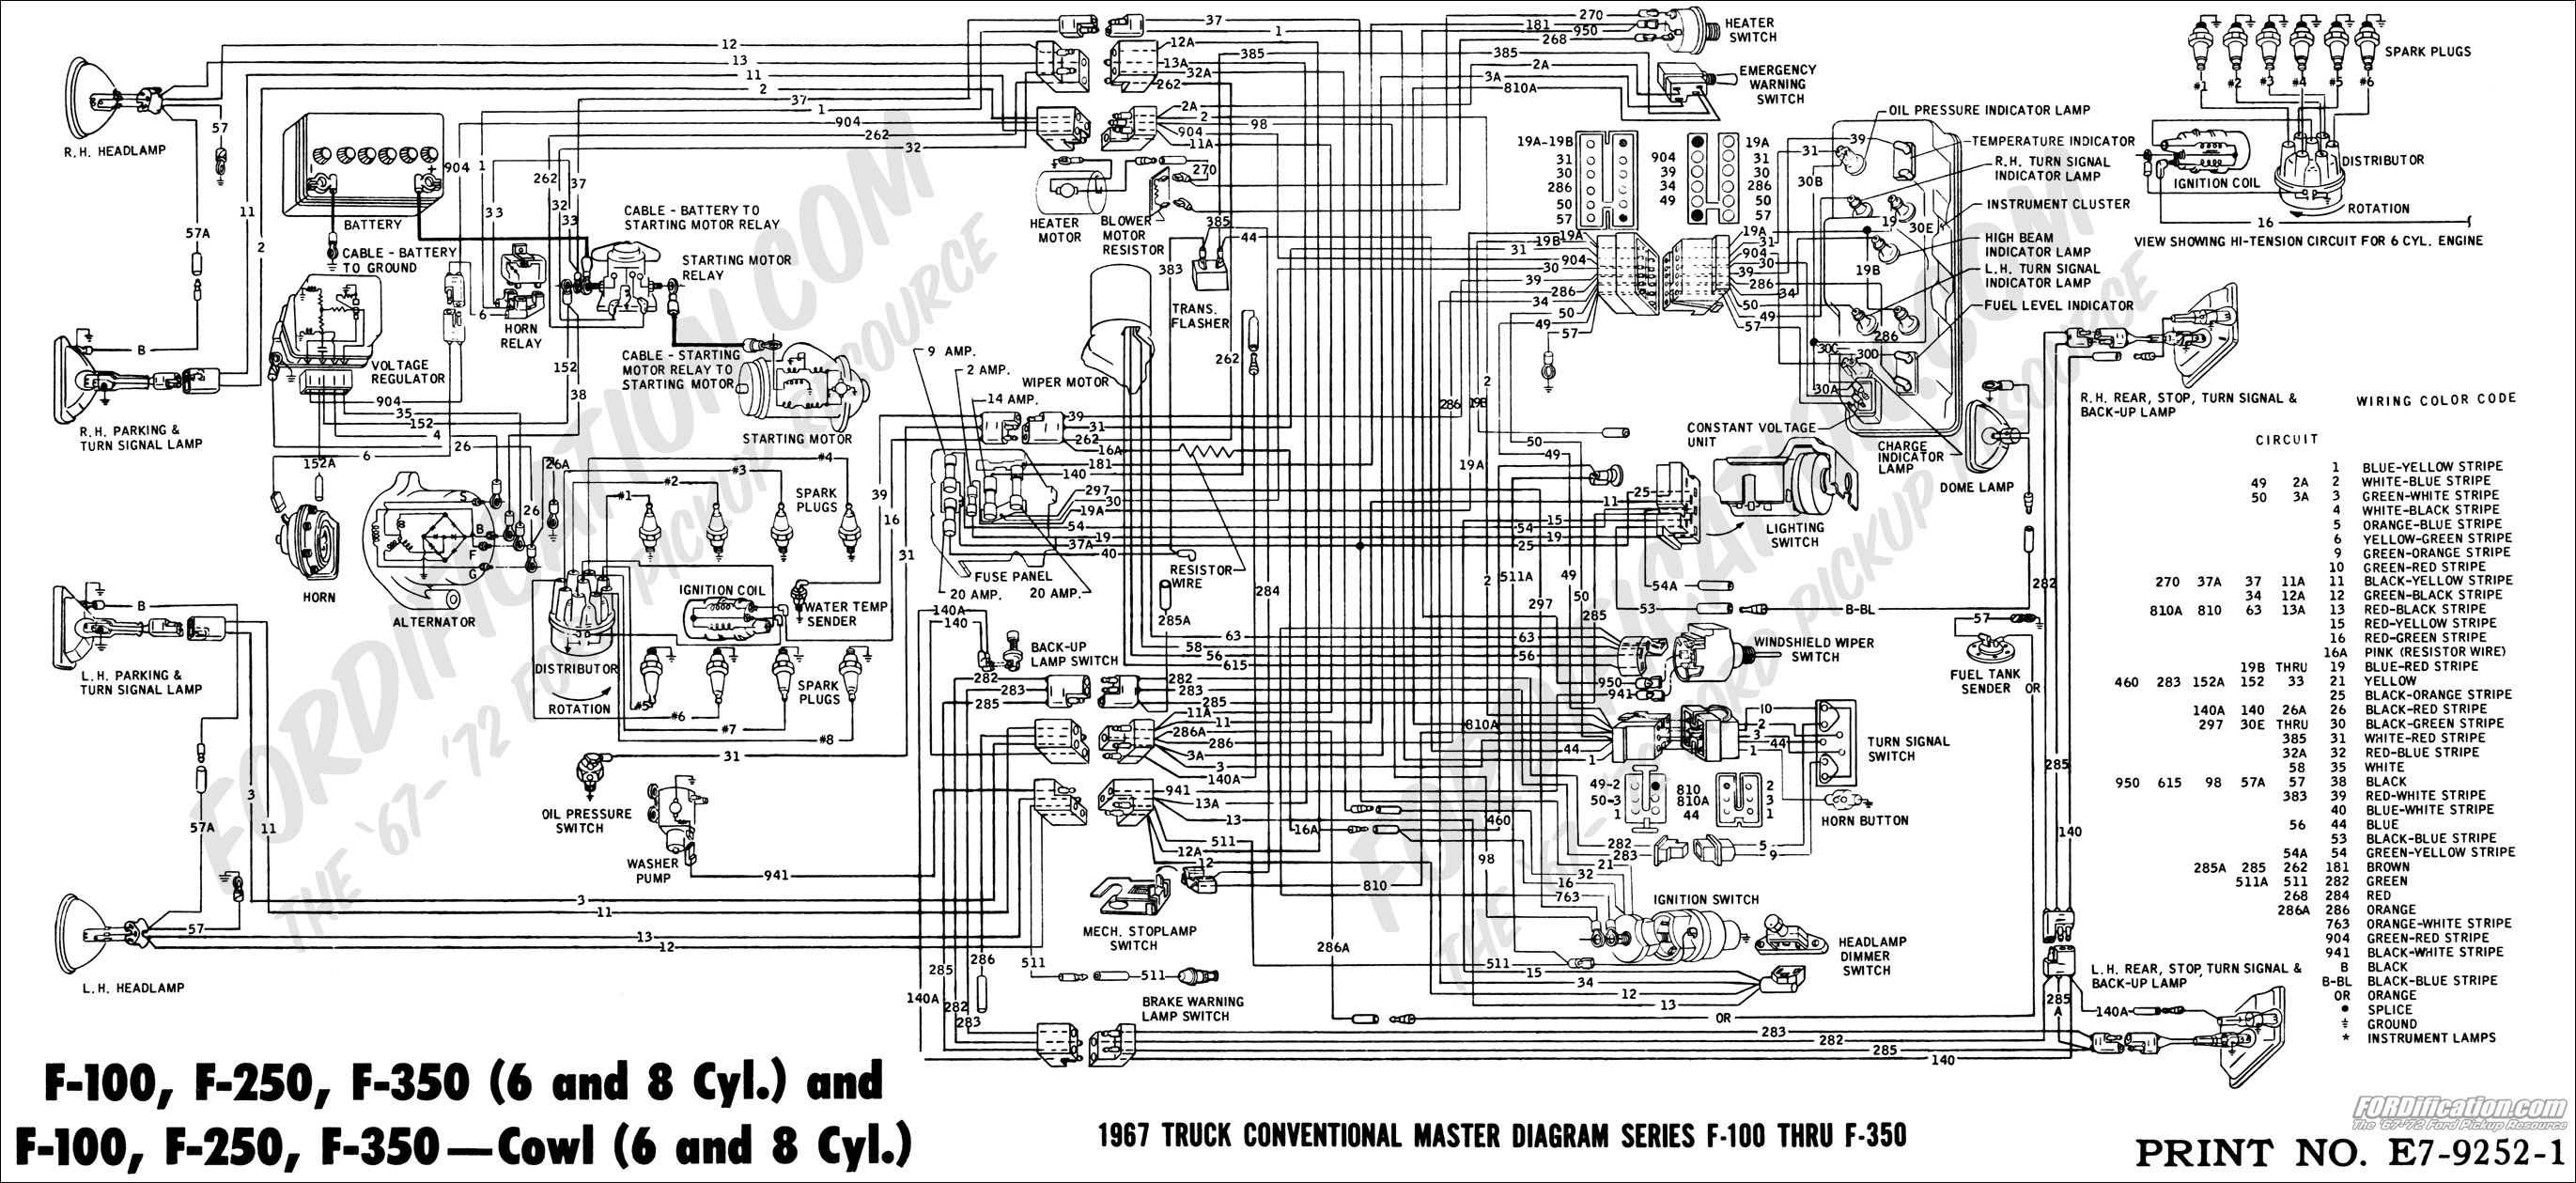 [SCHEMATICS_48ZD]  236802 1984 Corvette Fuel Pump Wiring Diagram | Wiring Library | 1984 Ford L9000 Truck Wiring Diagrams |  | Wiring Library